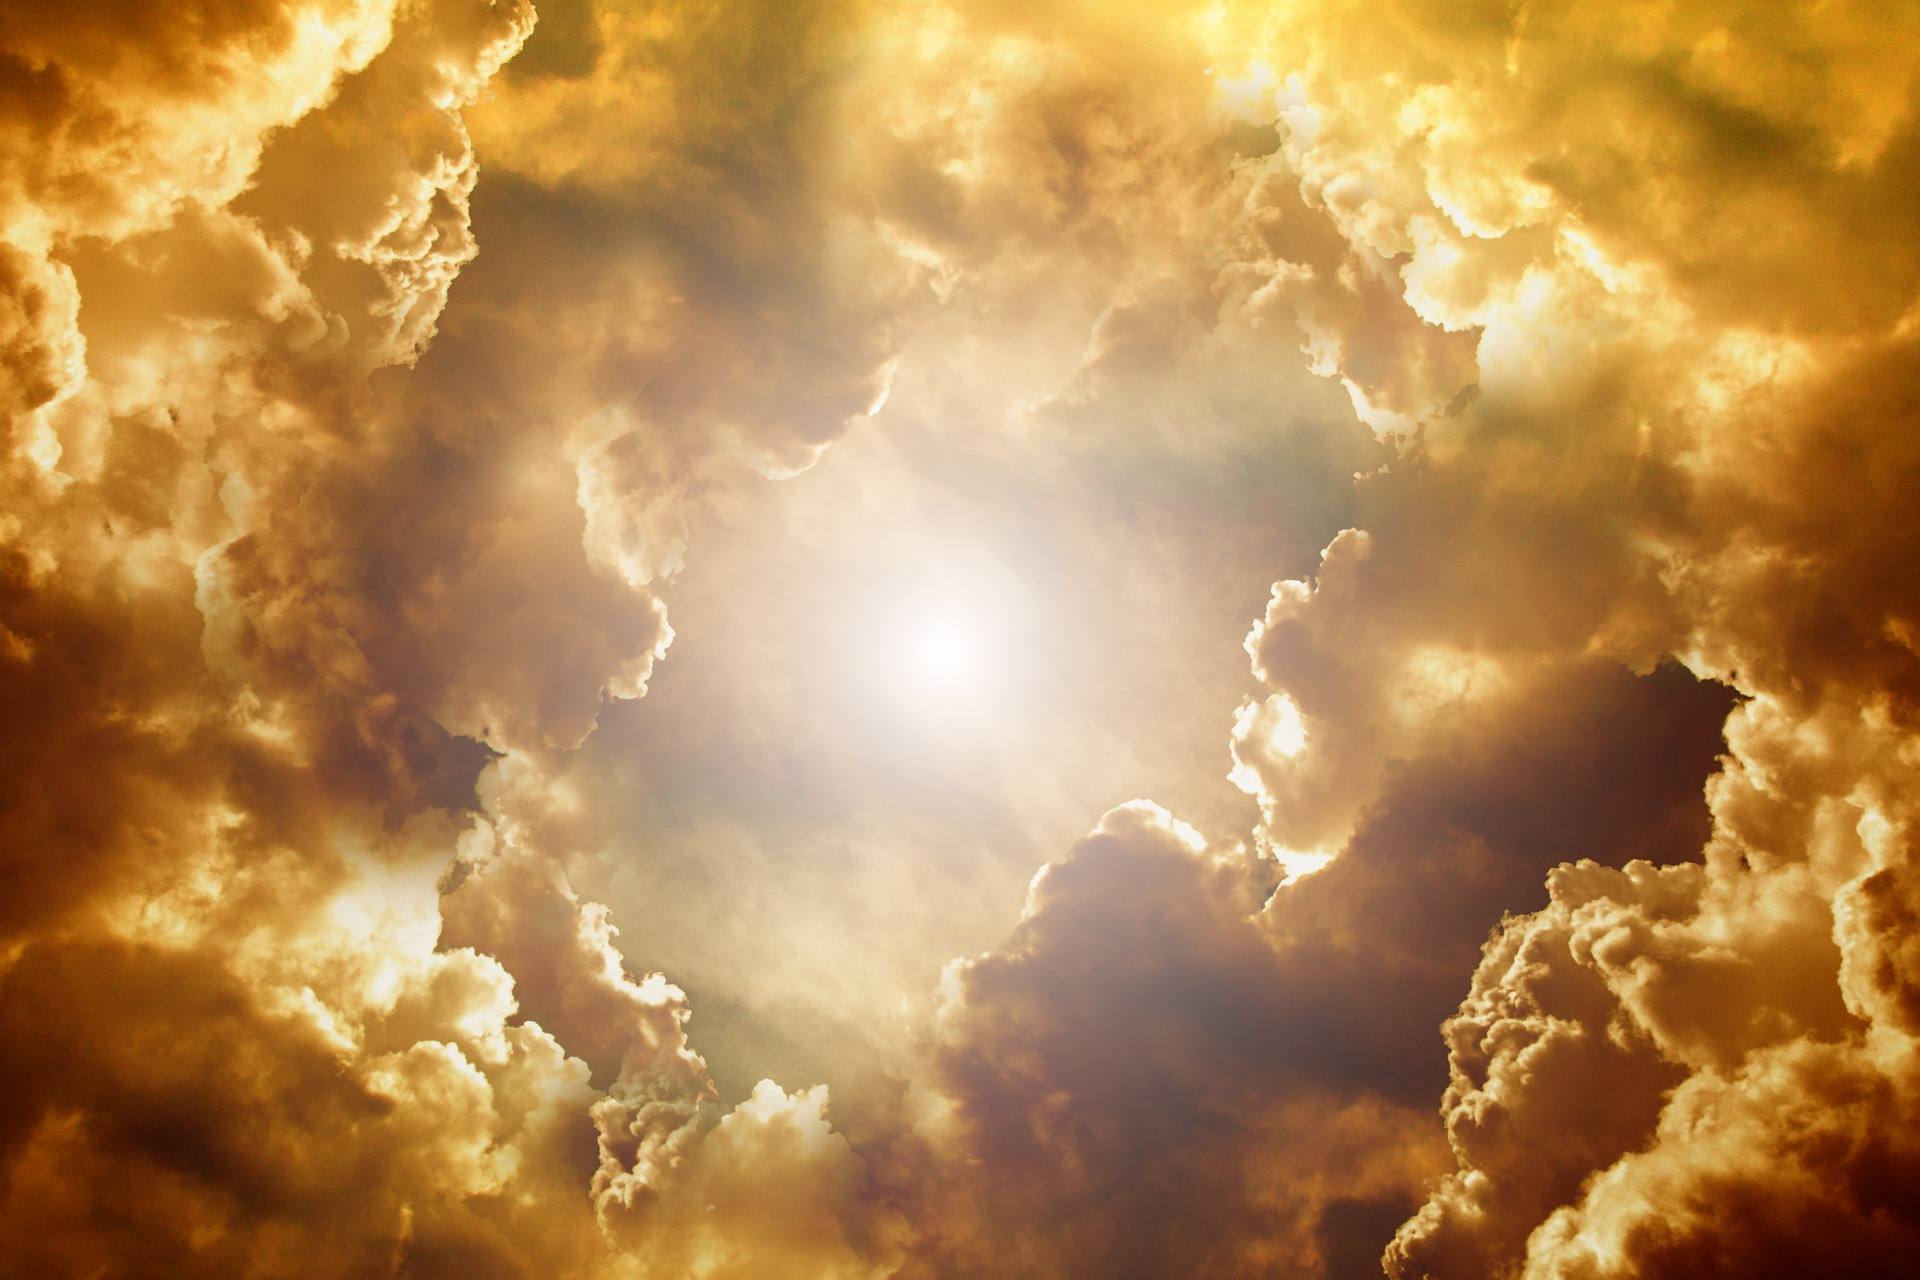 The sun shining through golden tinted clouds